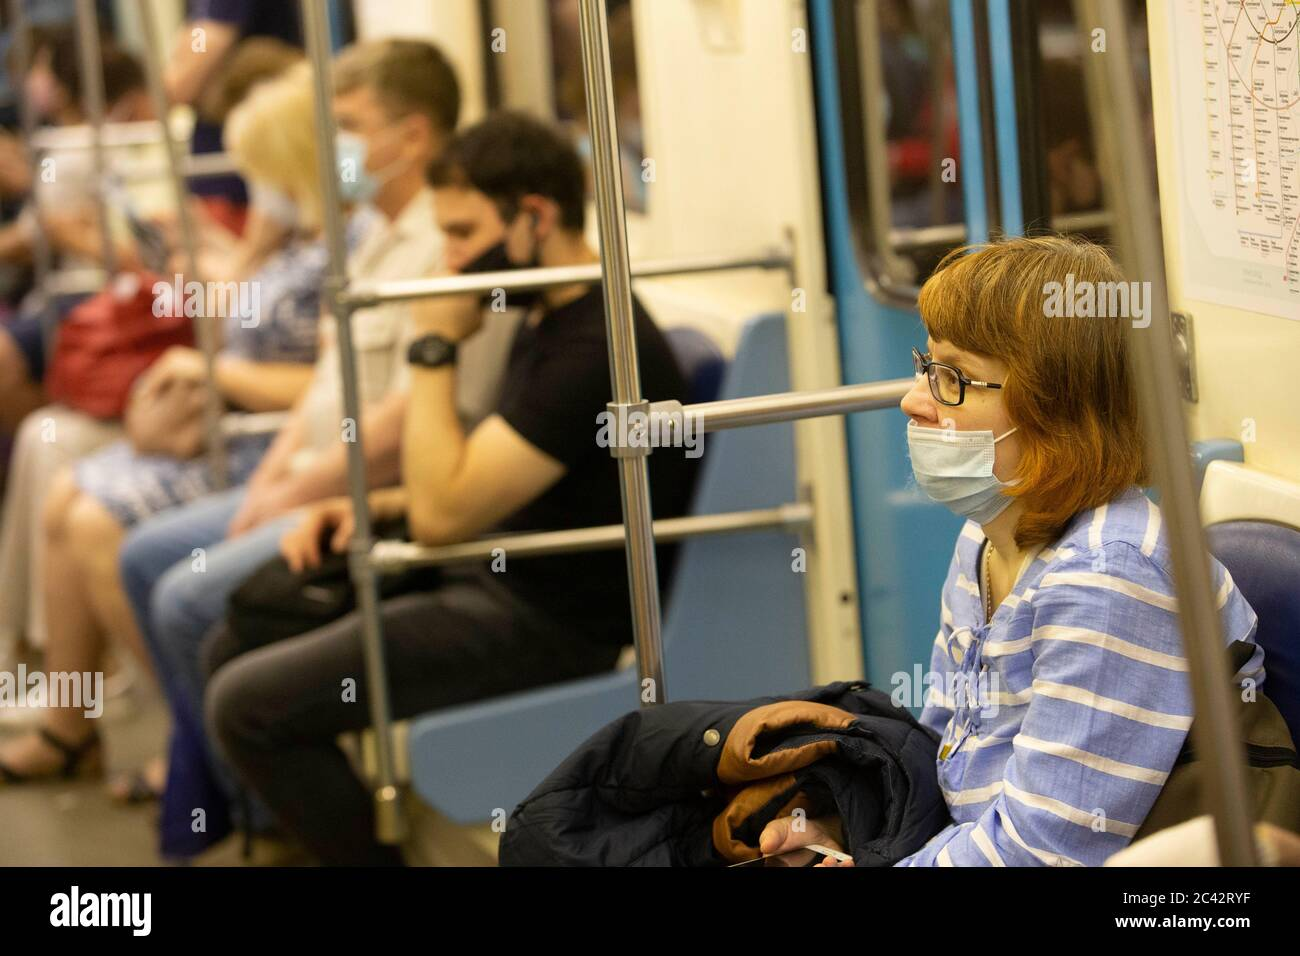 Moscow, Russia. 23rd June, 2020. Passengers wearing face masks sit in the subway train in Moscow, Russia, on June 23, 2020. Russia recorded 7,425 COVID-19 cases in the past 24 hours, taking its total to 599,705, the country's coronavirus response center said in a statement Tuesday. Credit: Alexander Zemlianichenko Jr/Xinhua/Alamy Live News Stock Photo